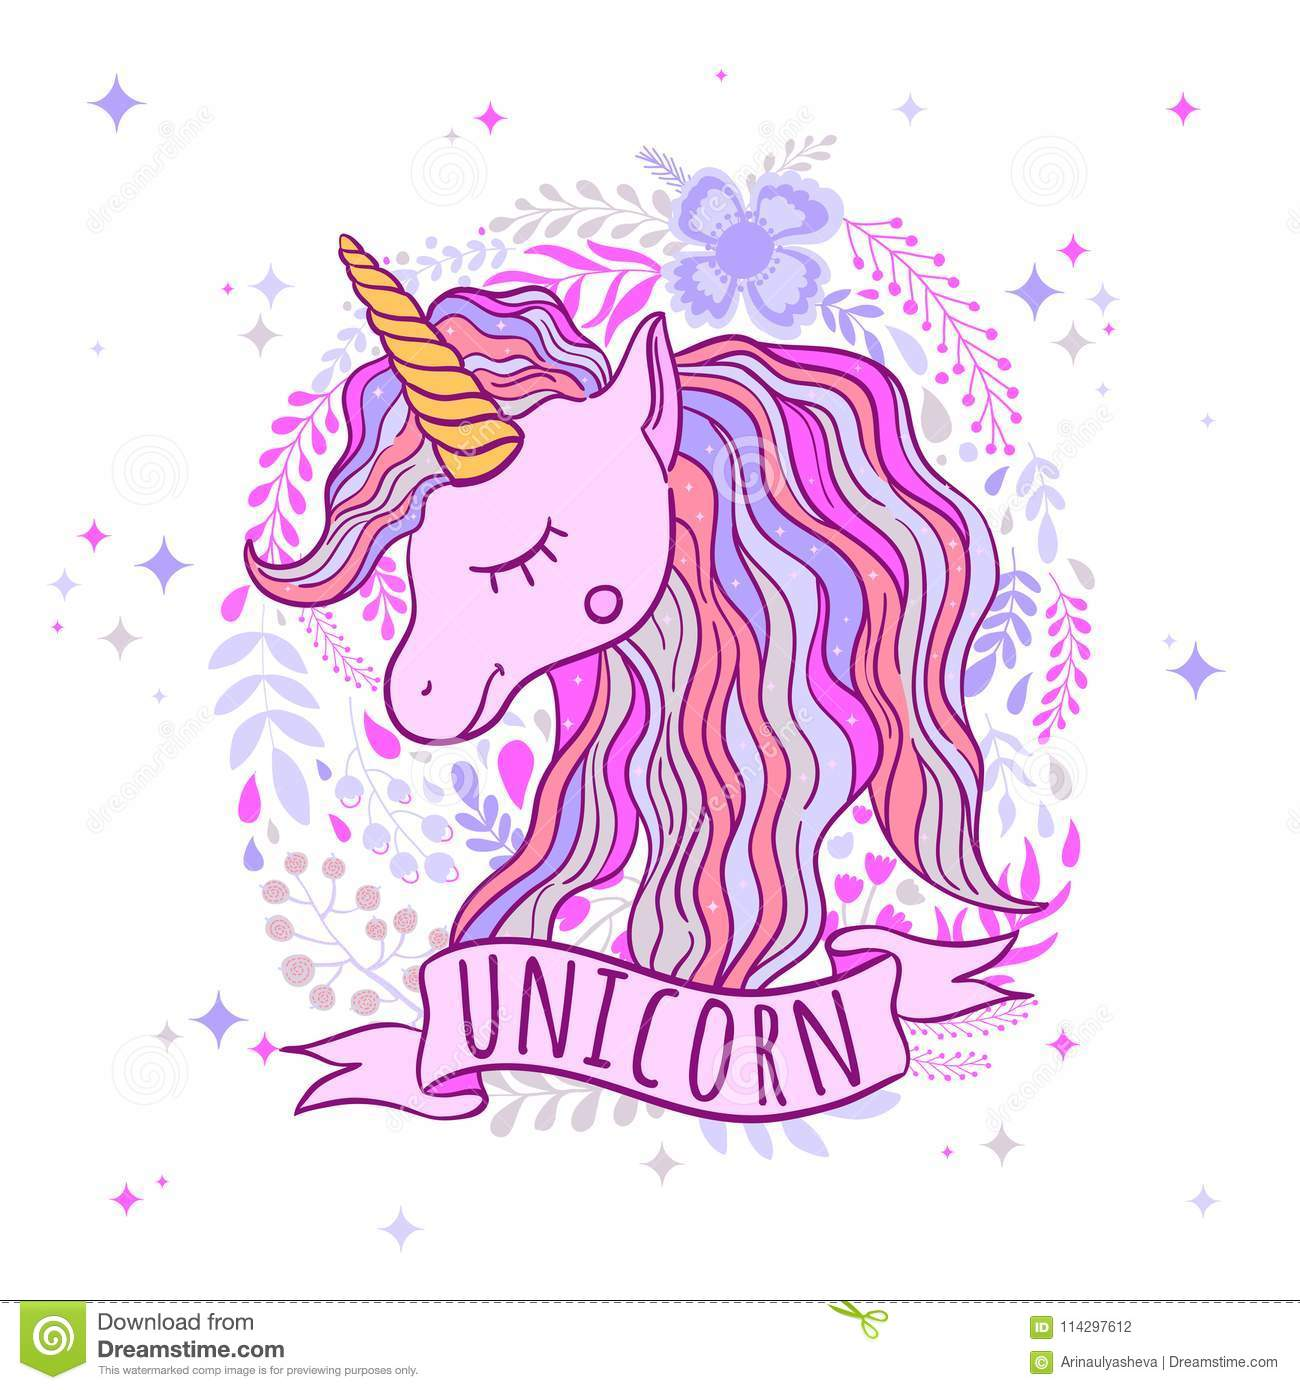 Cute Unicorn For Prints To Print A Poster Clothes For A